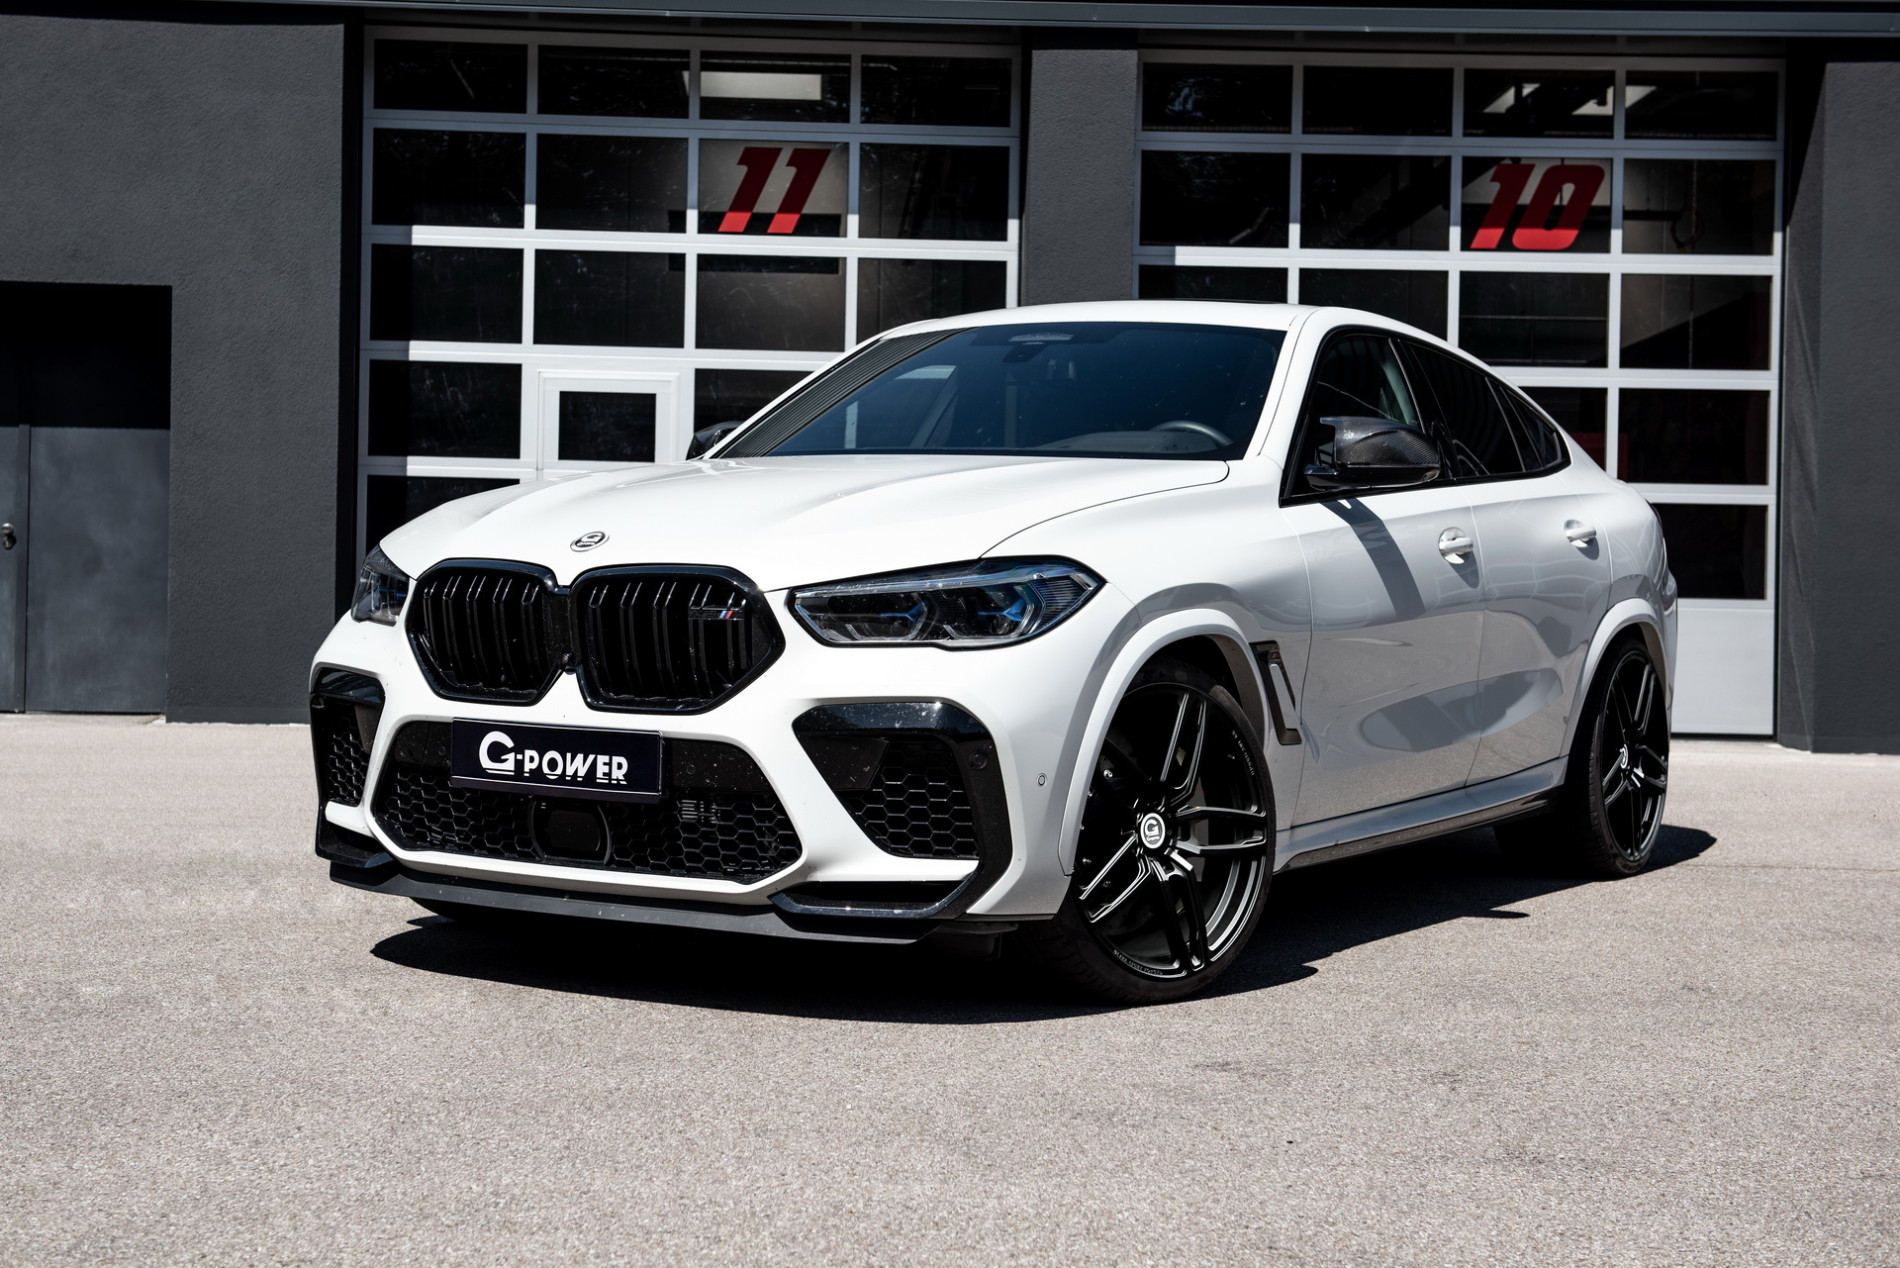 BMW X6 M de la G-Power - BMW X6 M de la G-Power